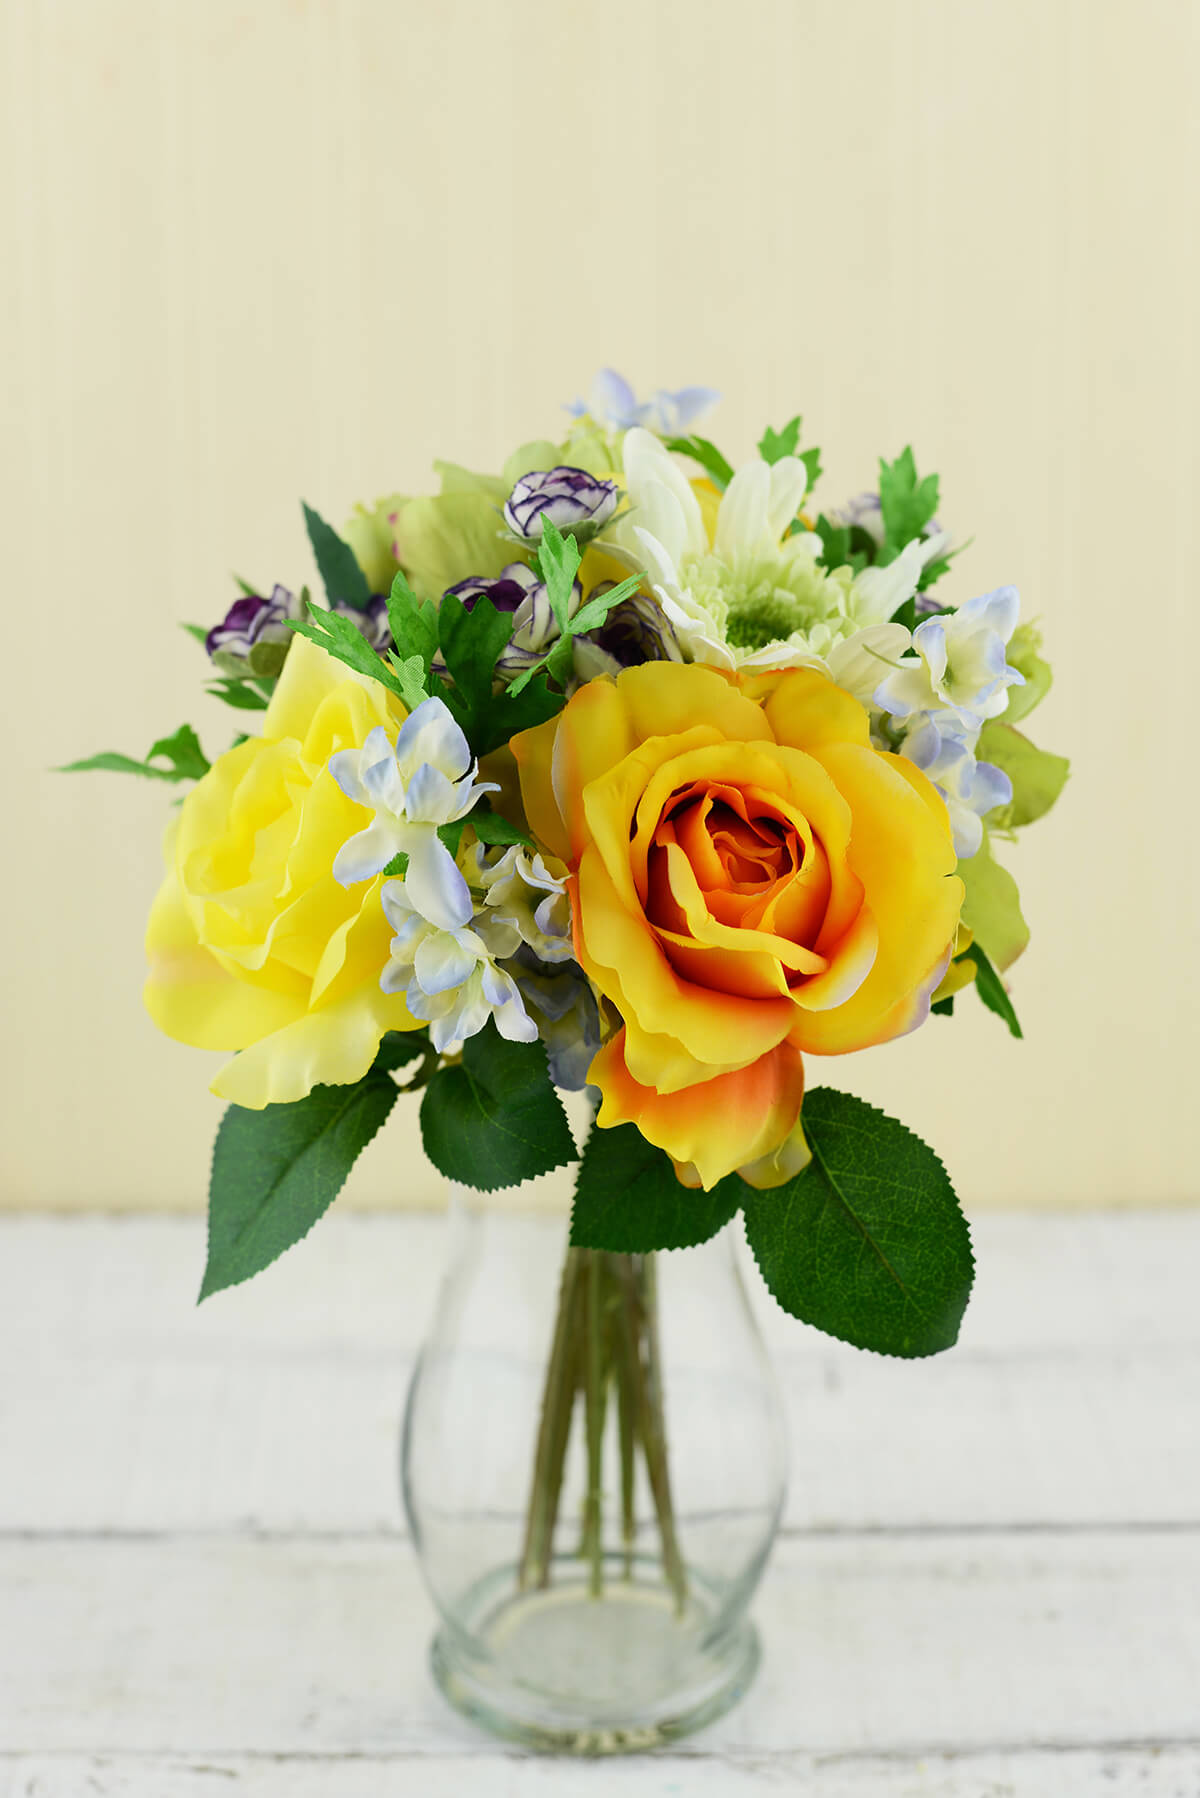 gerbera daisy and rose wedding bouquets photo - 1